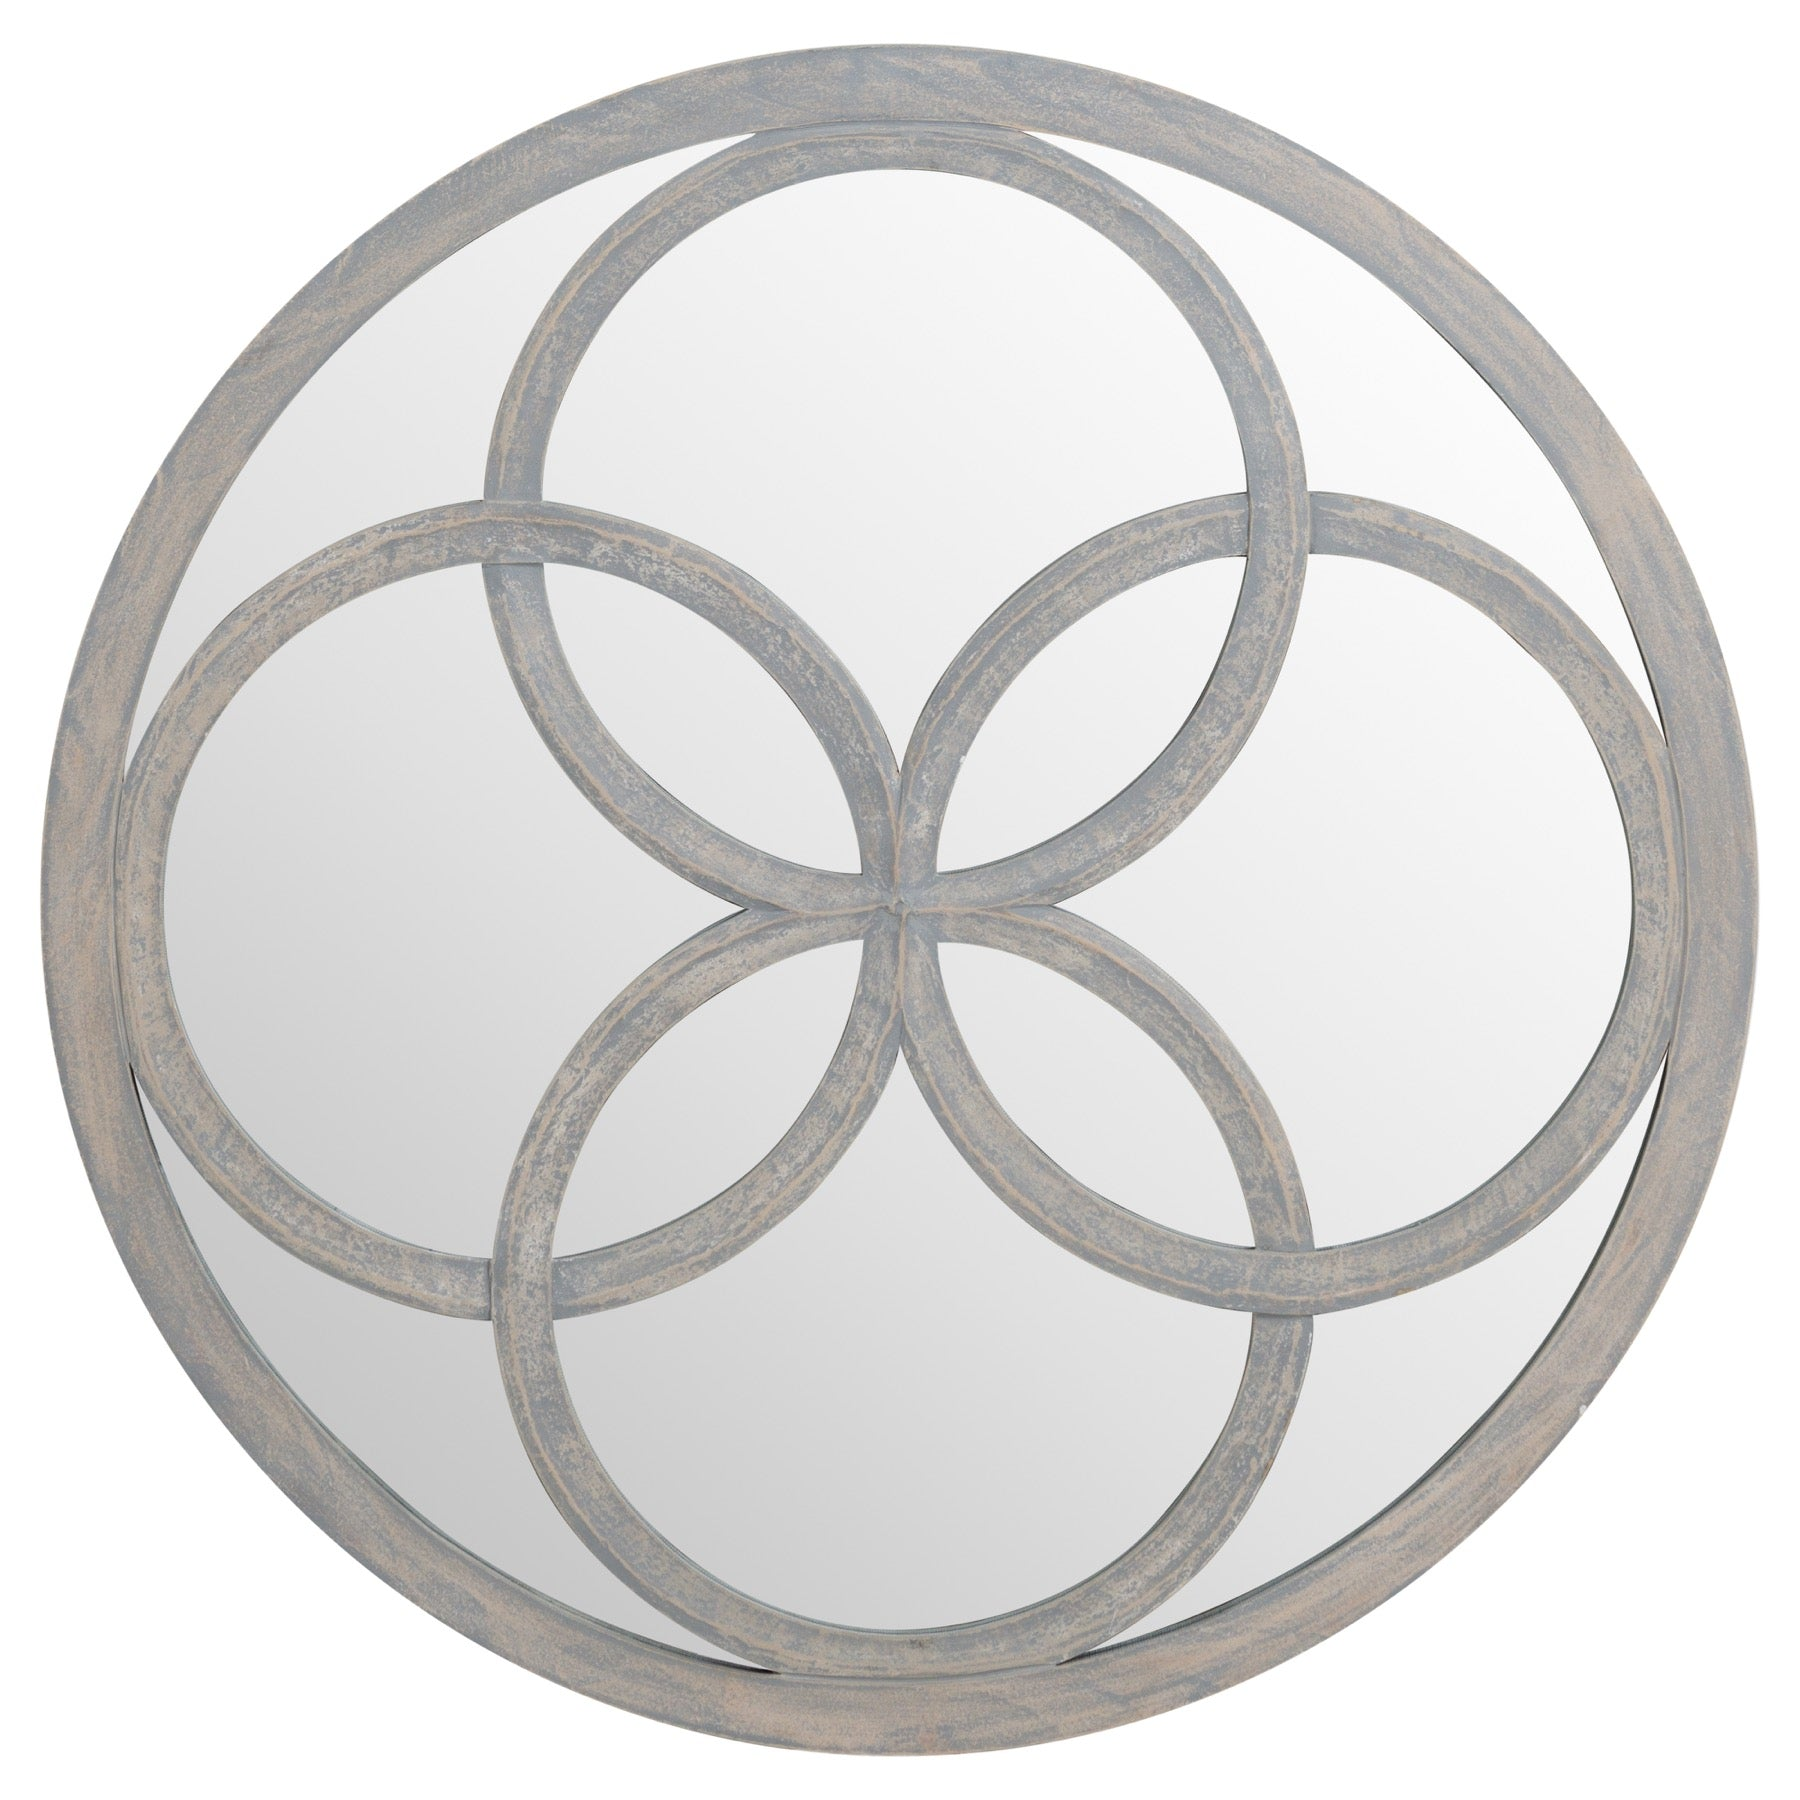 Flower of life mirror